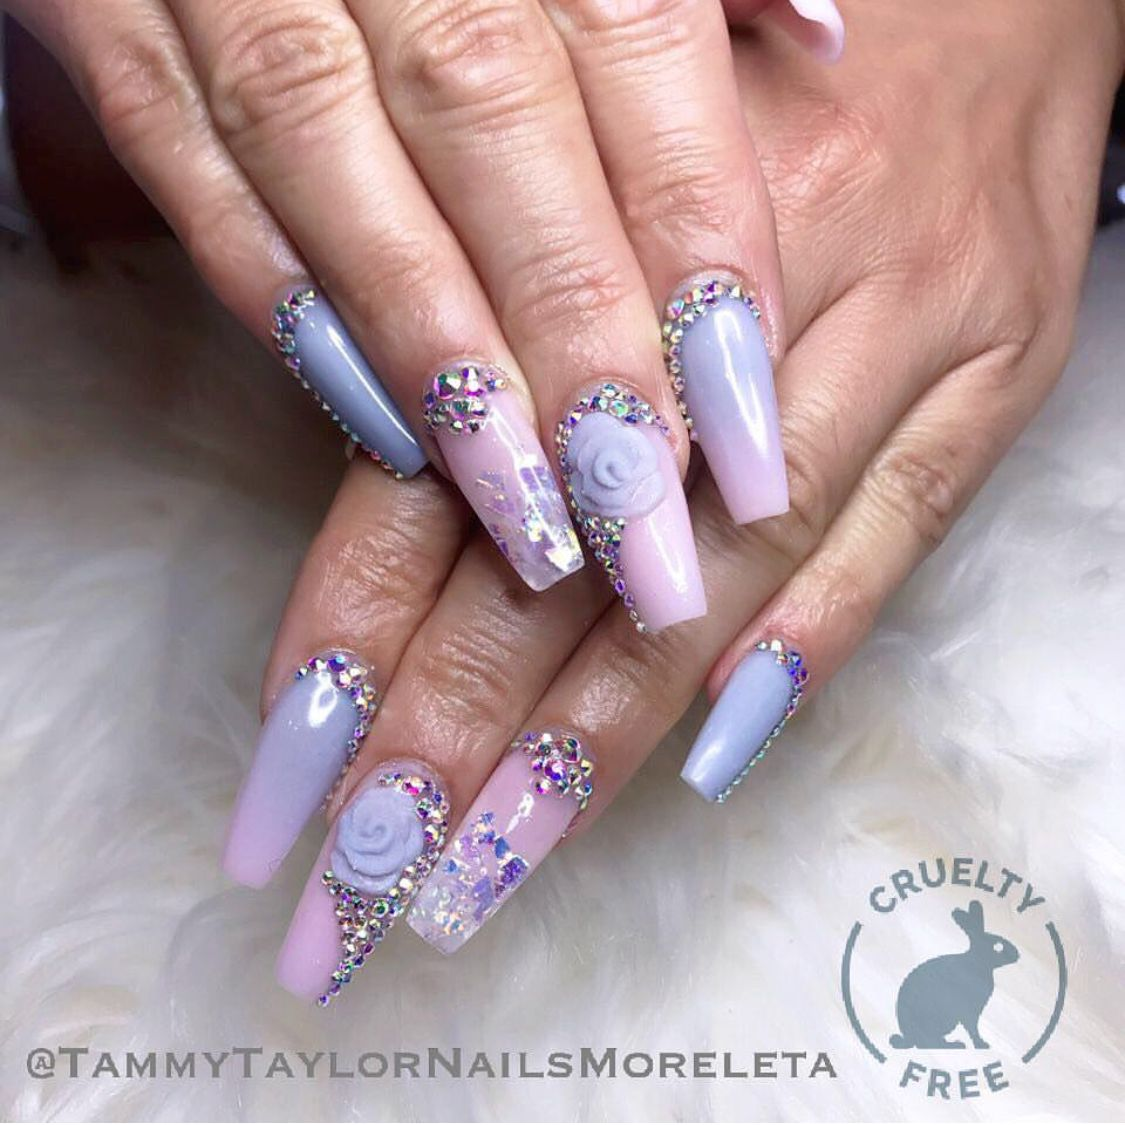 Acrylic & Gel Nails and Toes • AcrylicGel Hybrid • Odorless • Lift ...